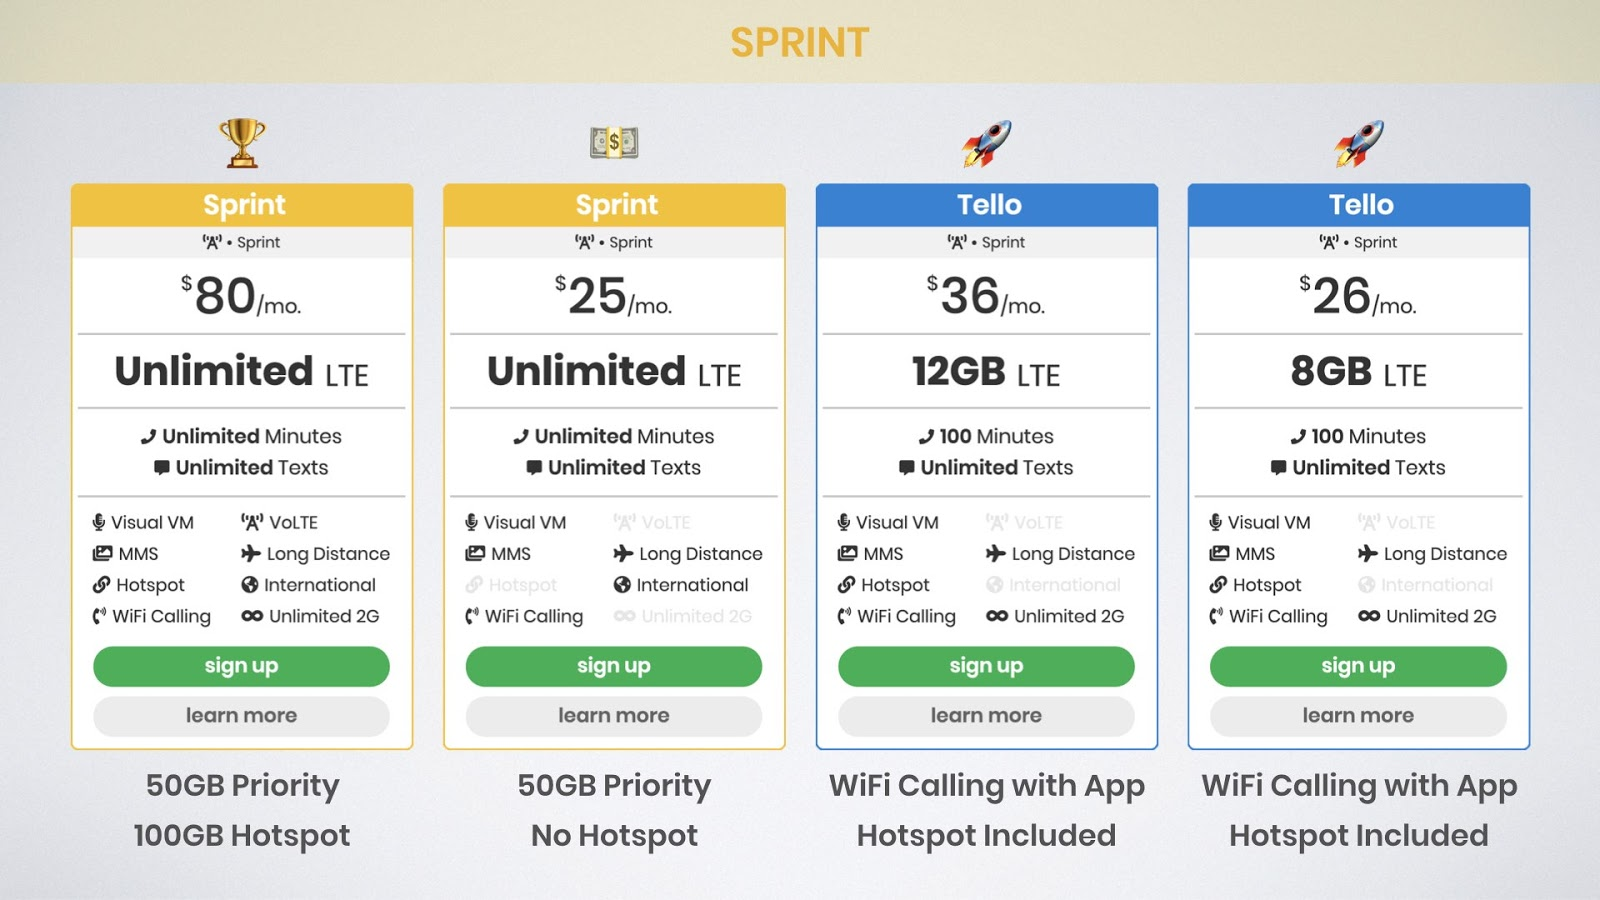 graphic of best Sprint unlimited data plans including Sprint Unlimited Premium, Sprint Unlimited Kickstart, and Tello